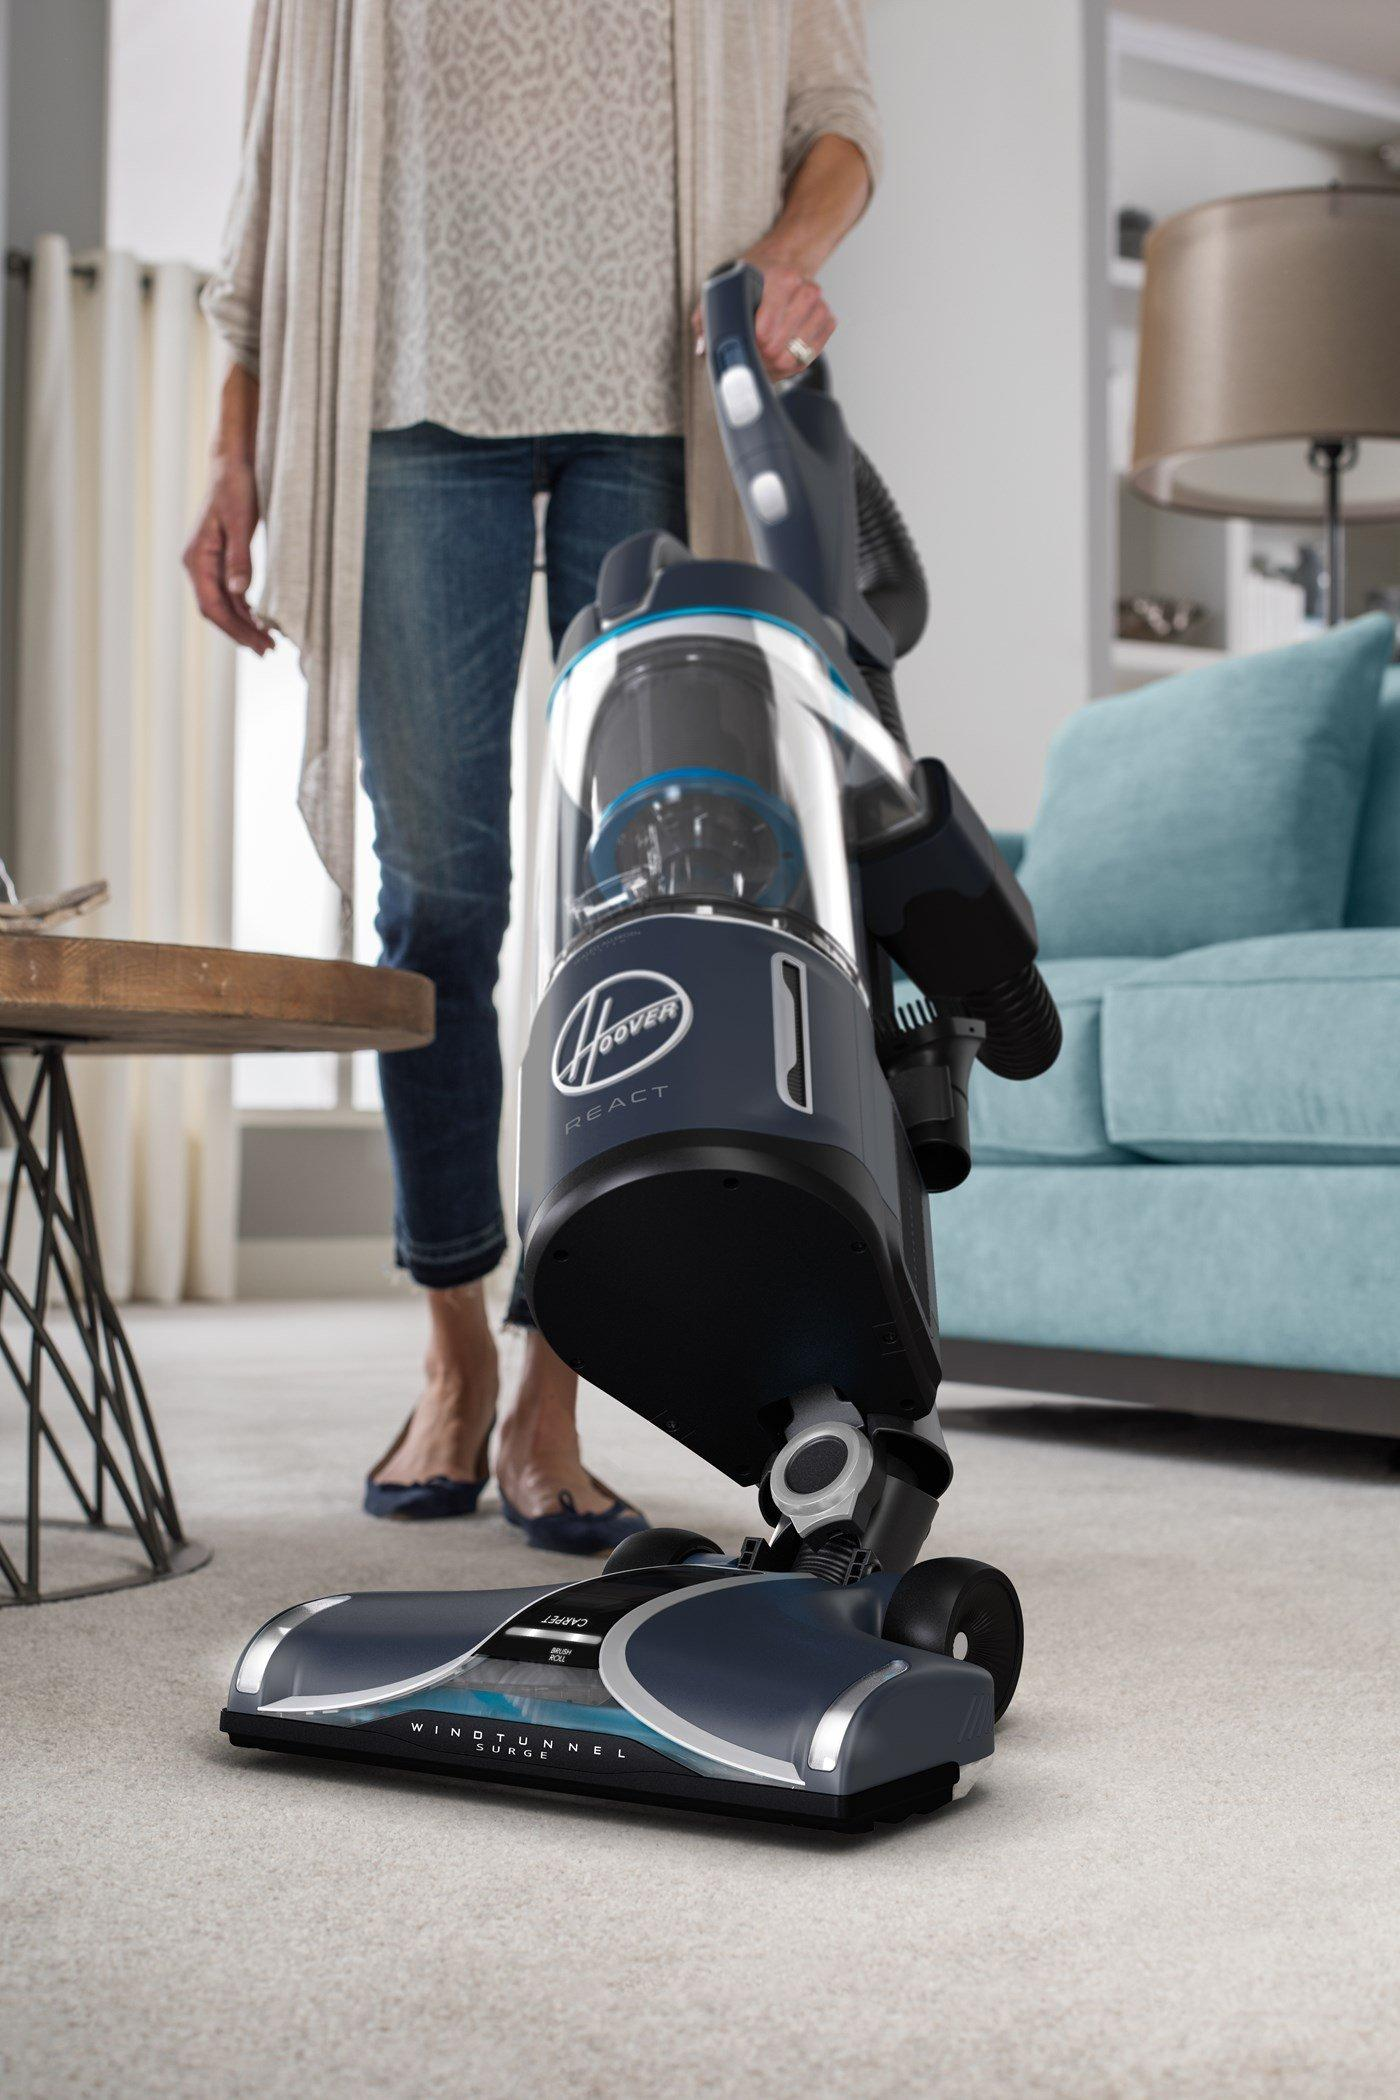 Hoover React Powered Reach Premier Upright Vacuum Cleaner